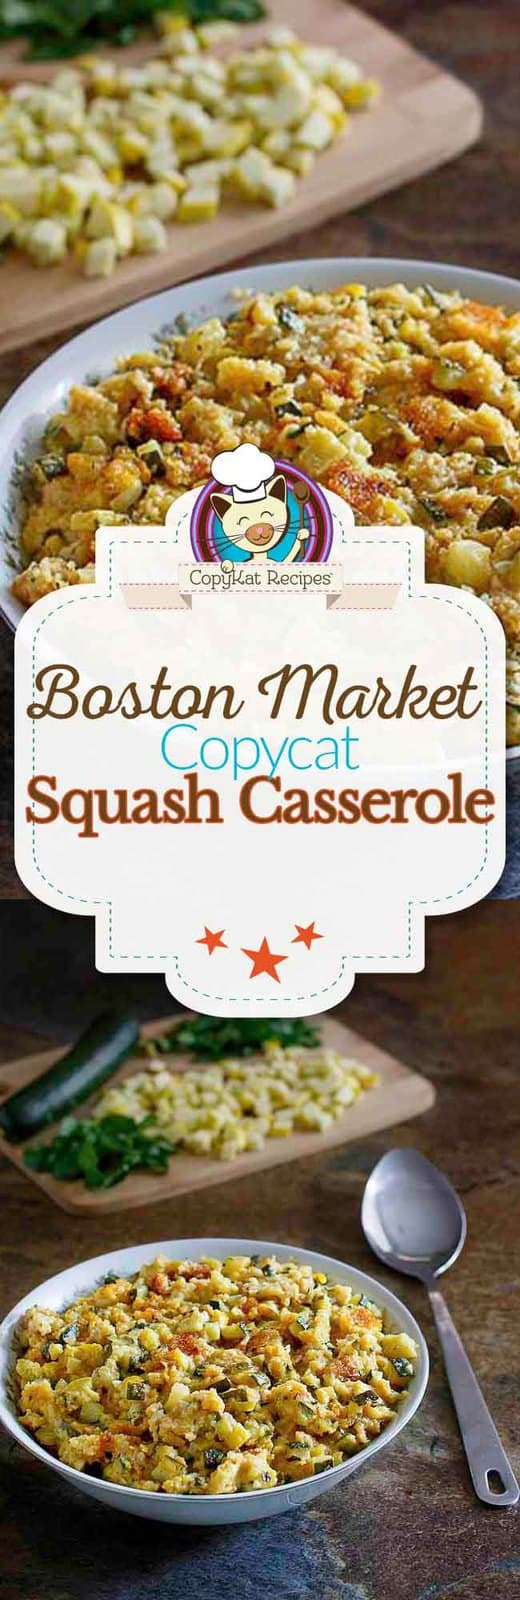 You can recreate the Boston Market Squash Casserole at home with this easy copycat recipe.